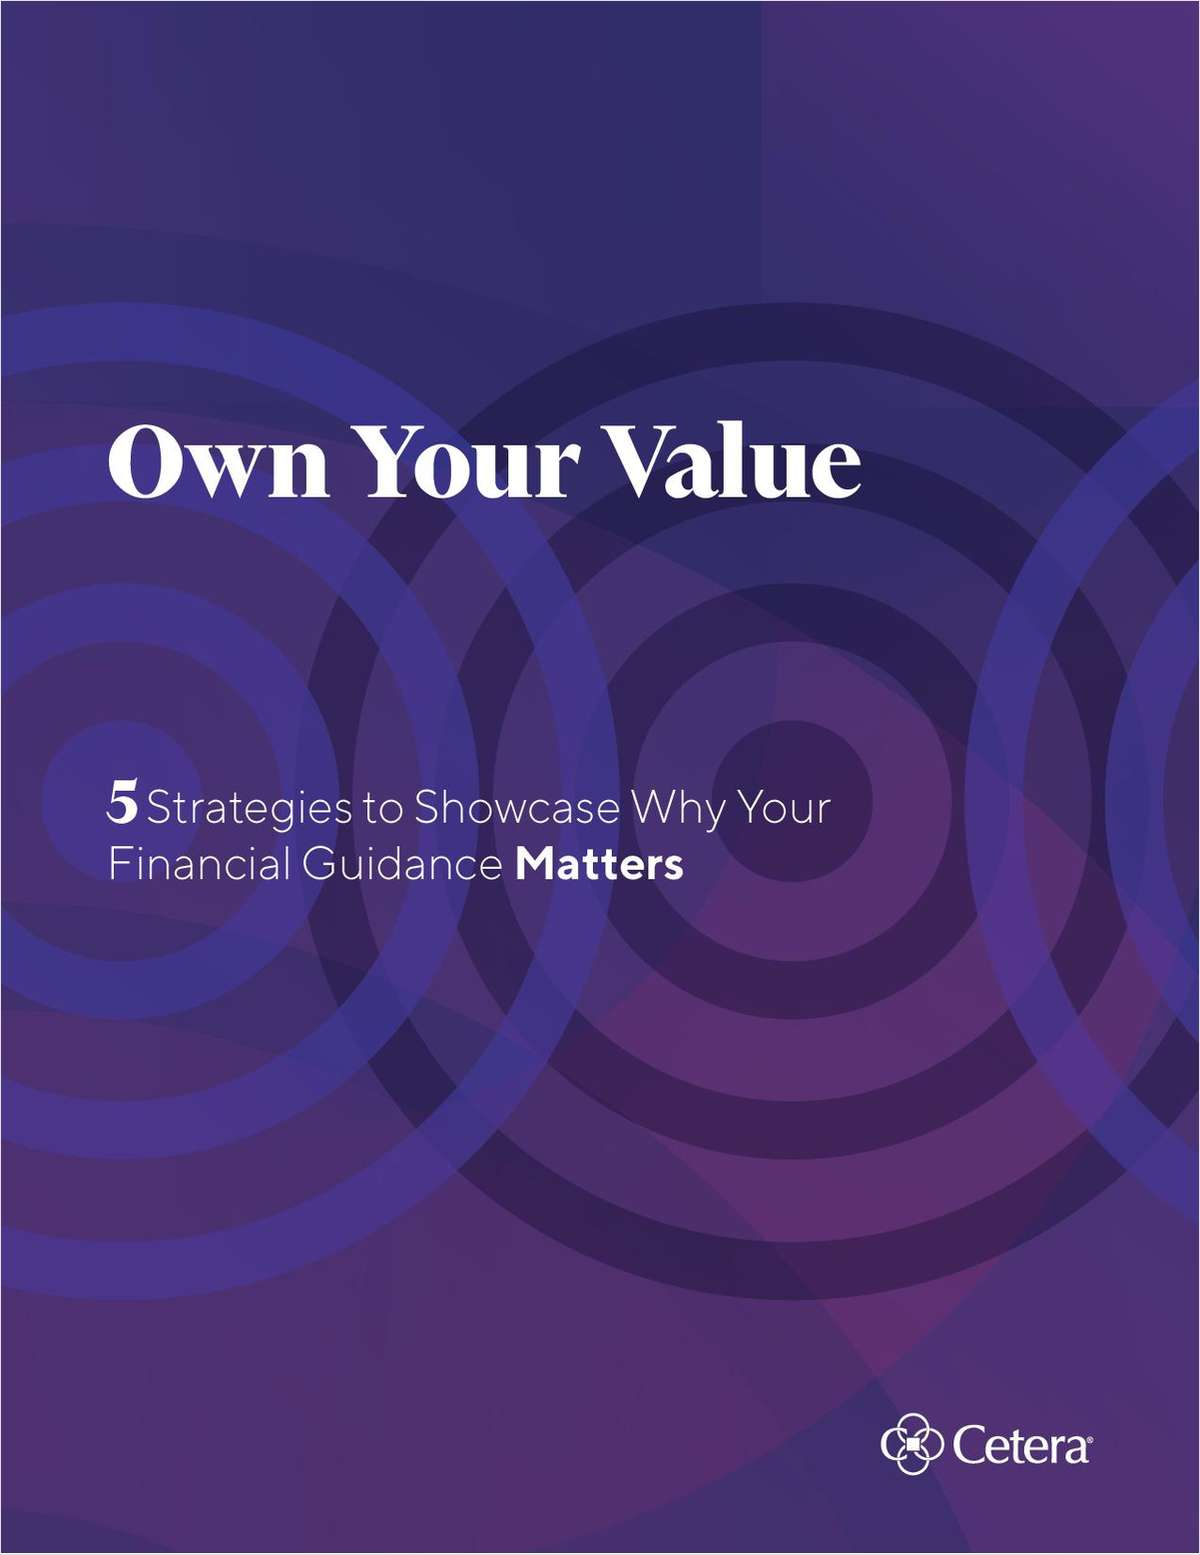 Own Your Value: 5 Strategies to Showcase Why Your Financial Guidance Matters